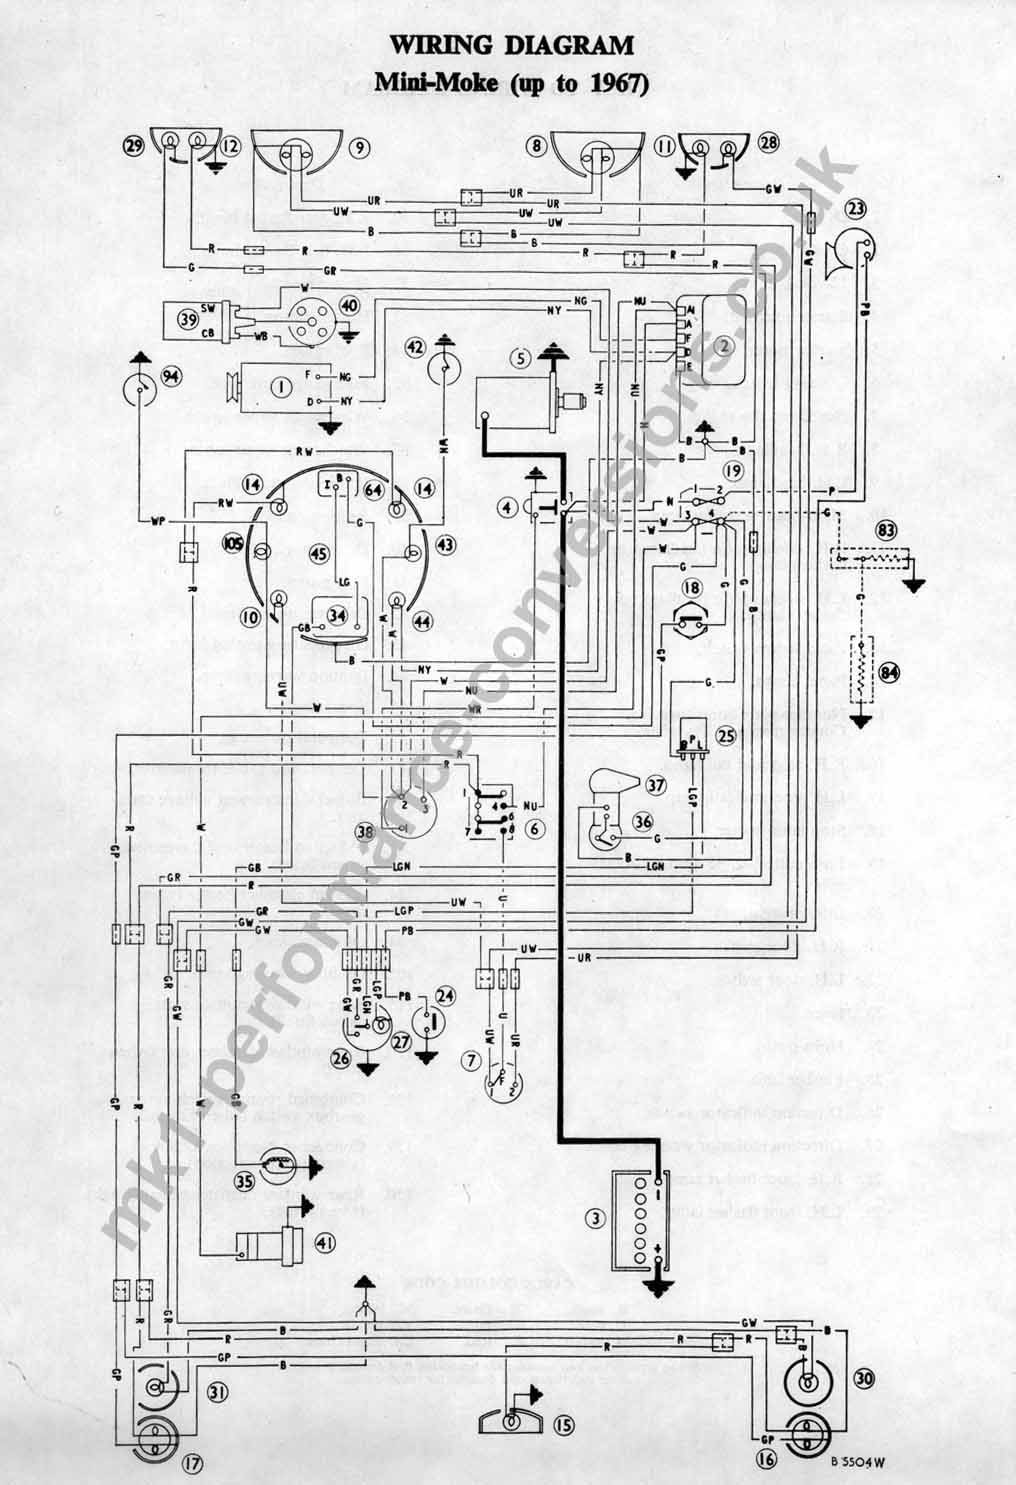 mk1_moke_wiring technical (electrical) escort mk1 wiring diagram at aneh.co